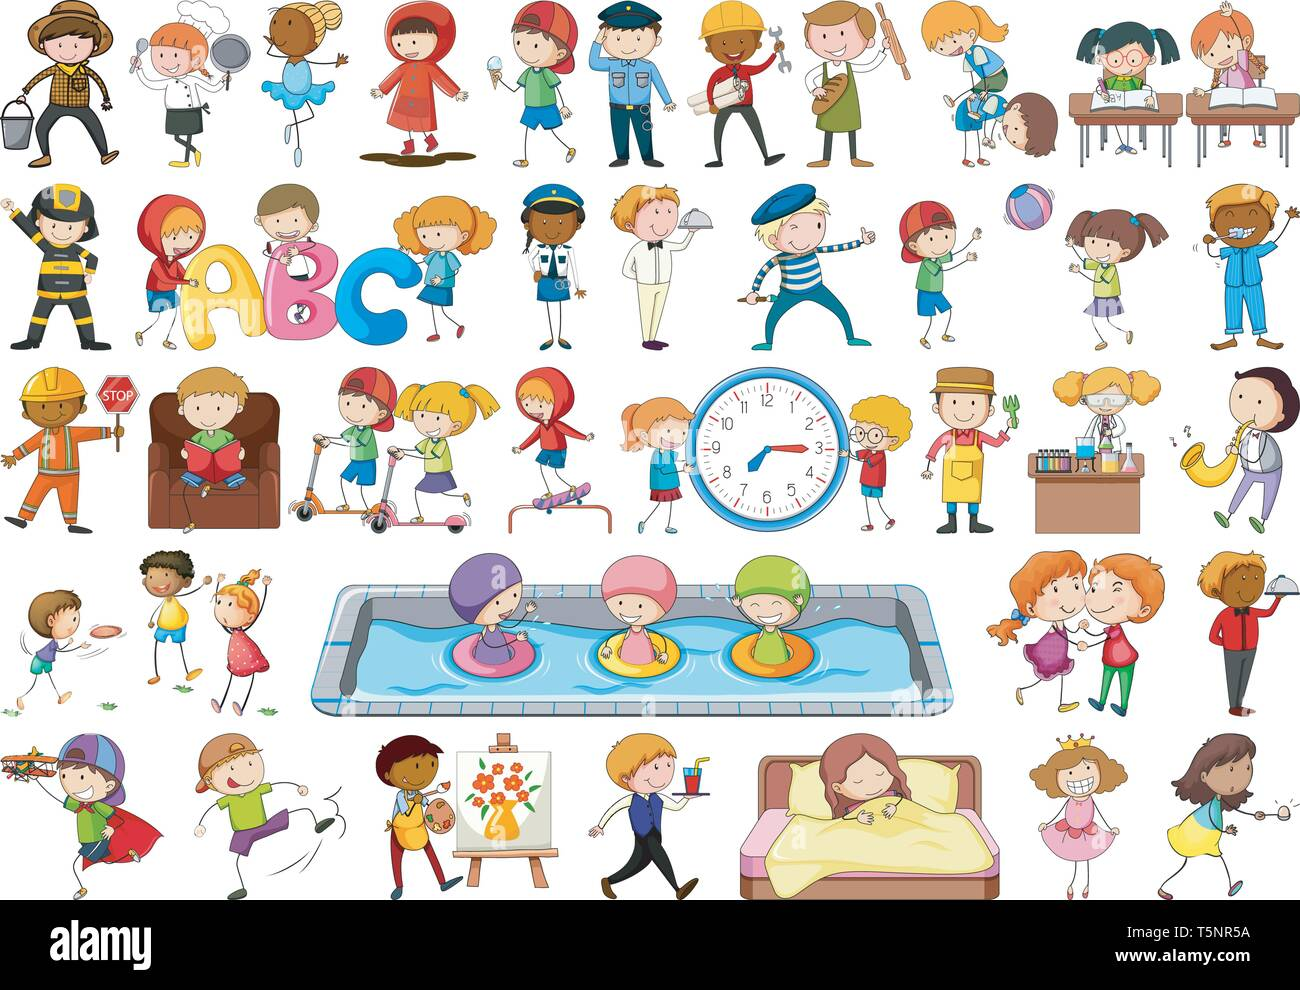 Set of simple characters illustration - Stock Vector